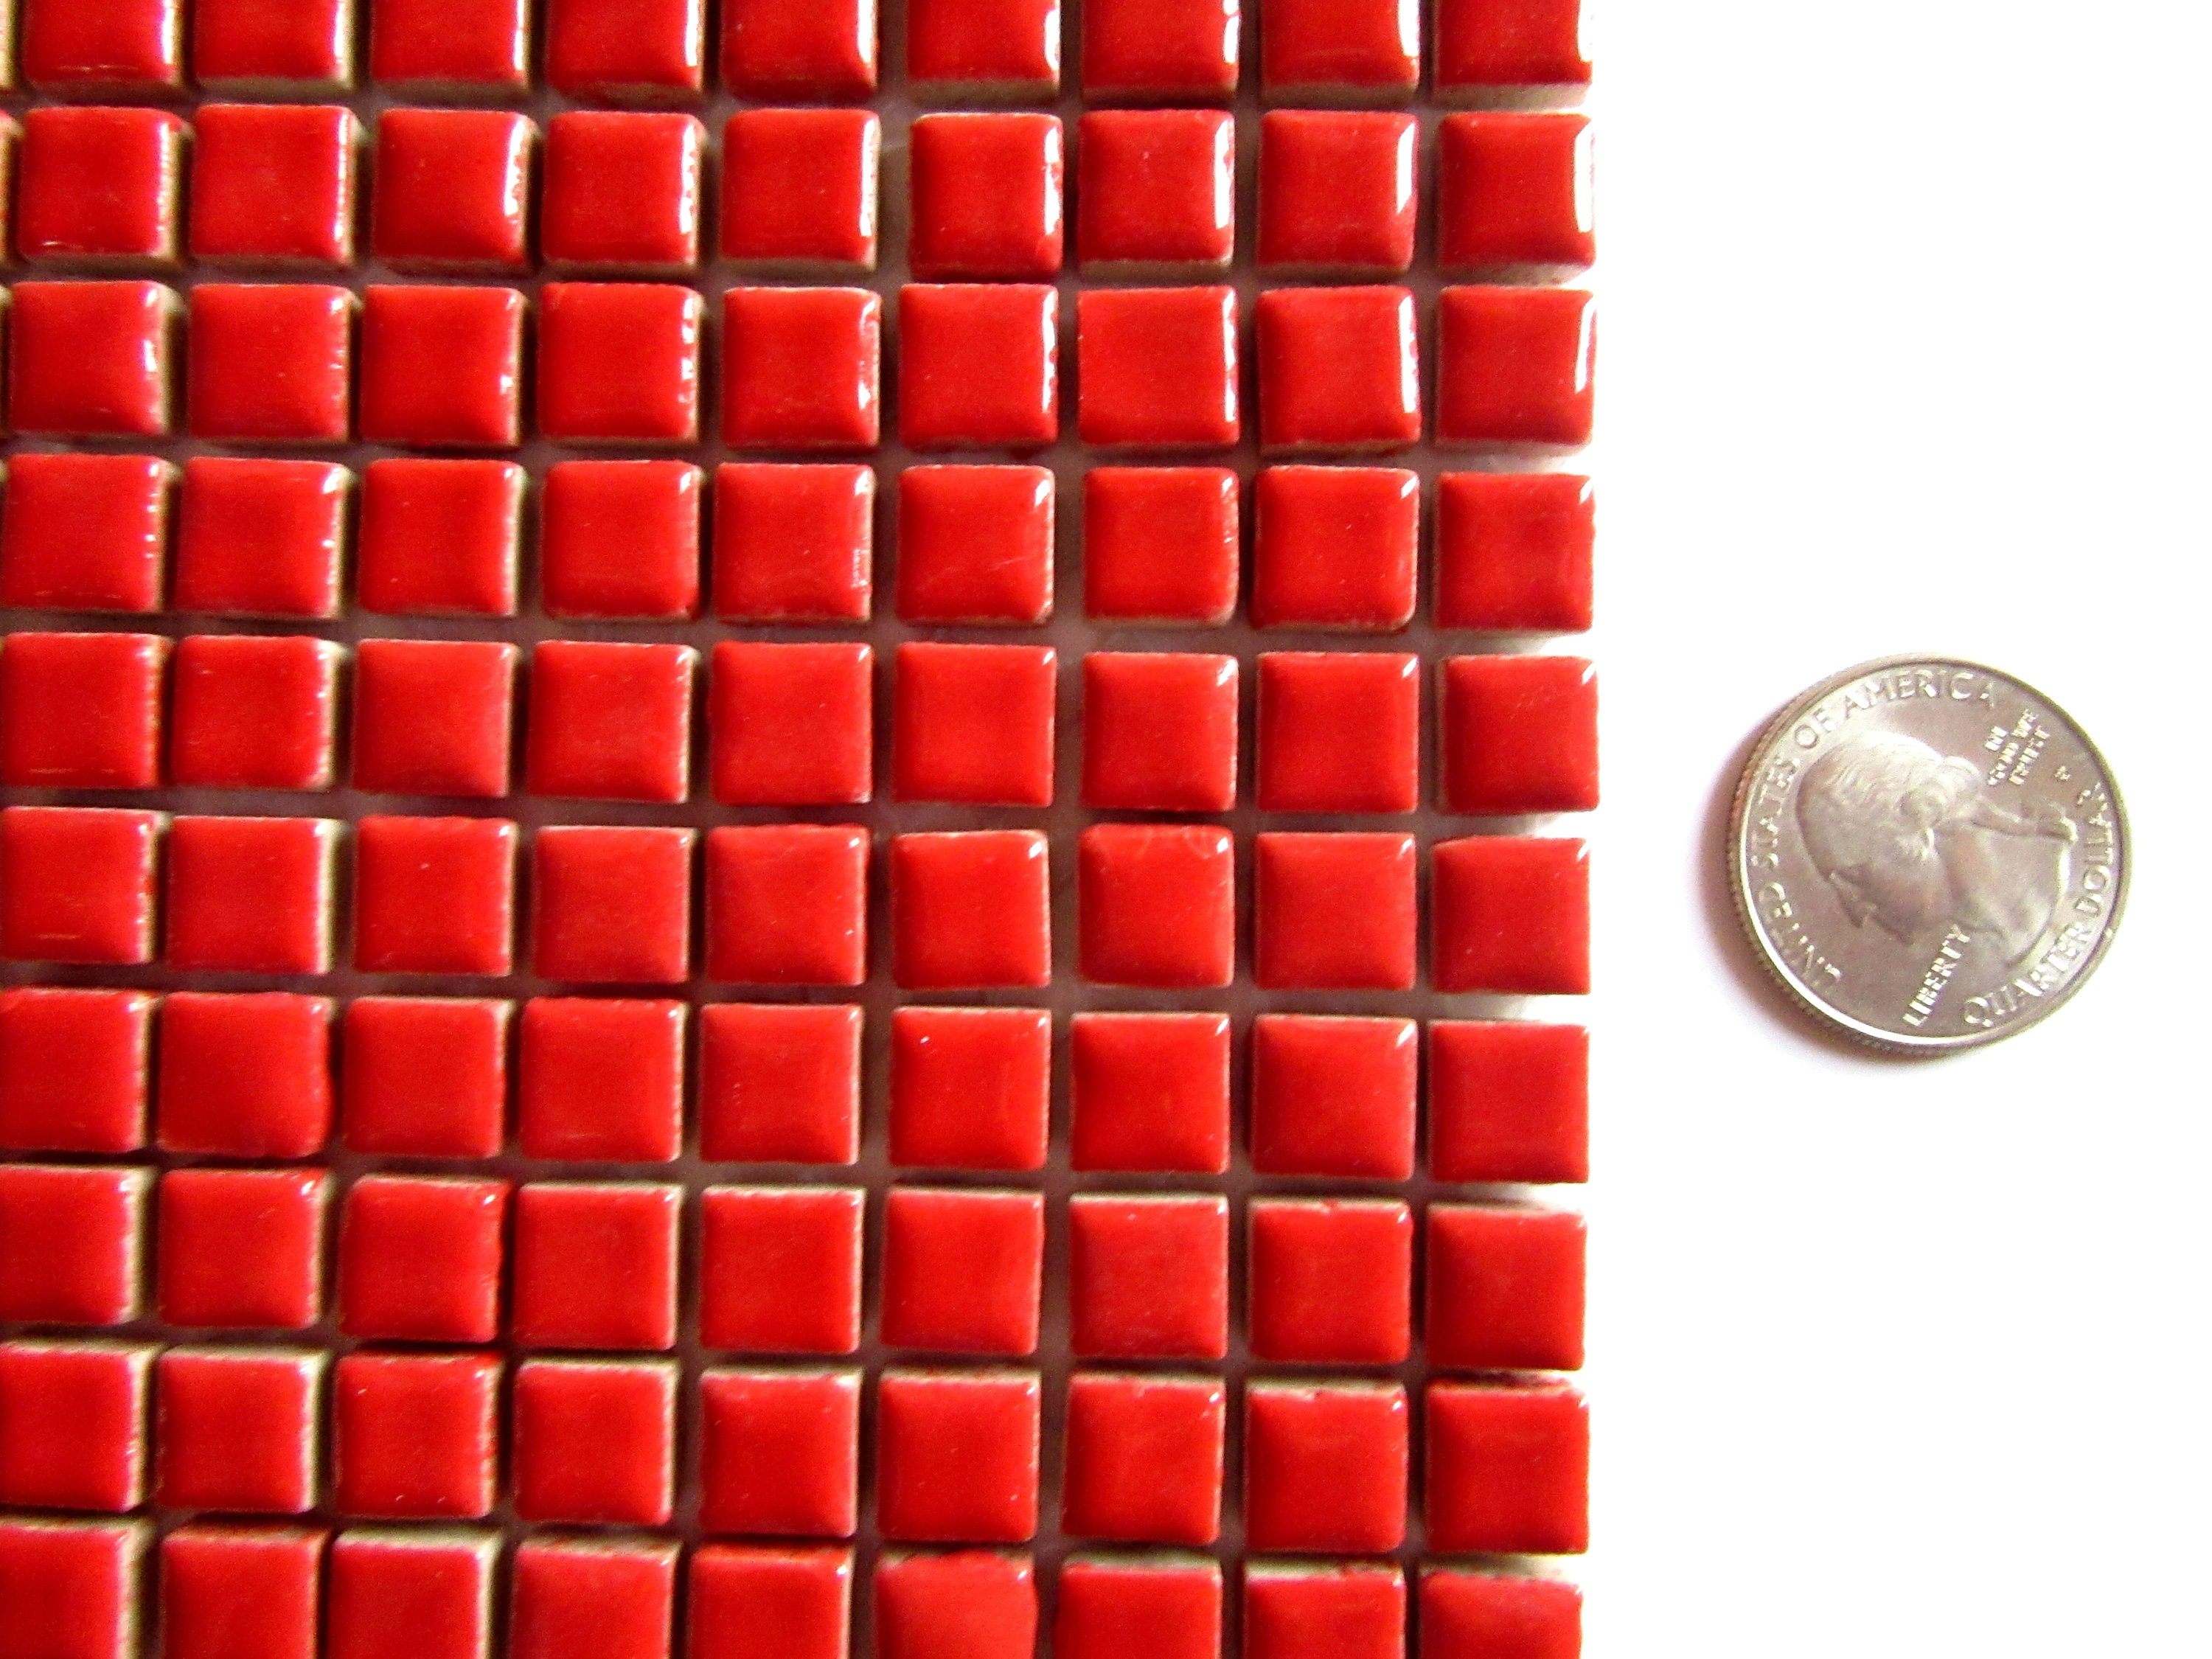 100 small red tiles mini red mosaic tiles tiny red tiles small 100 small red tiles mini red mosaic tiles tiny red tiles small ceramic tiles small square tiles bright red tiles ceramic mosaic pieces dailygadgetfo Choice Image